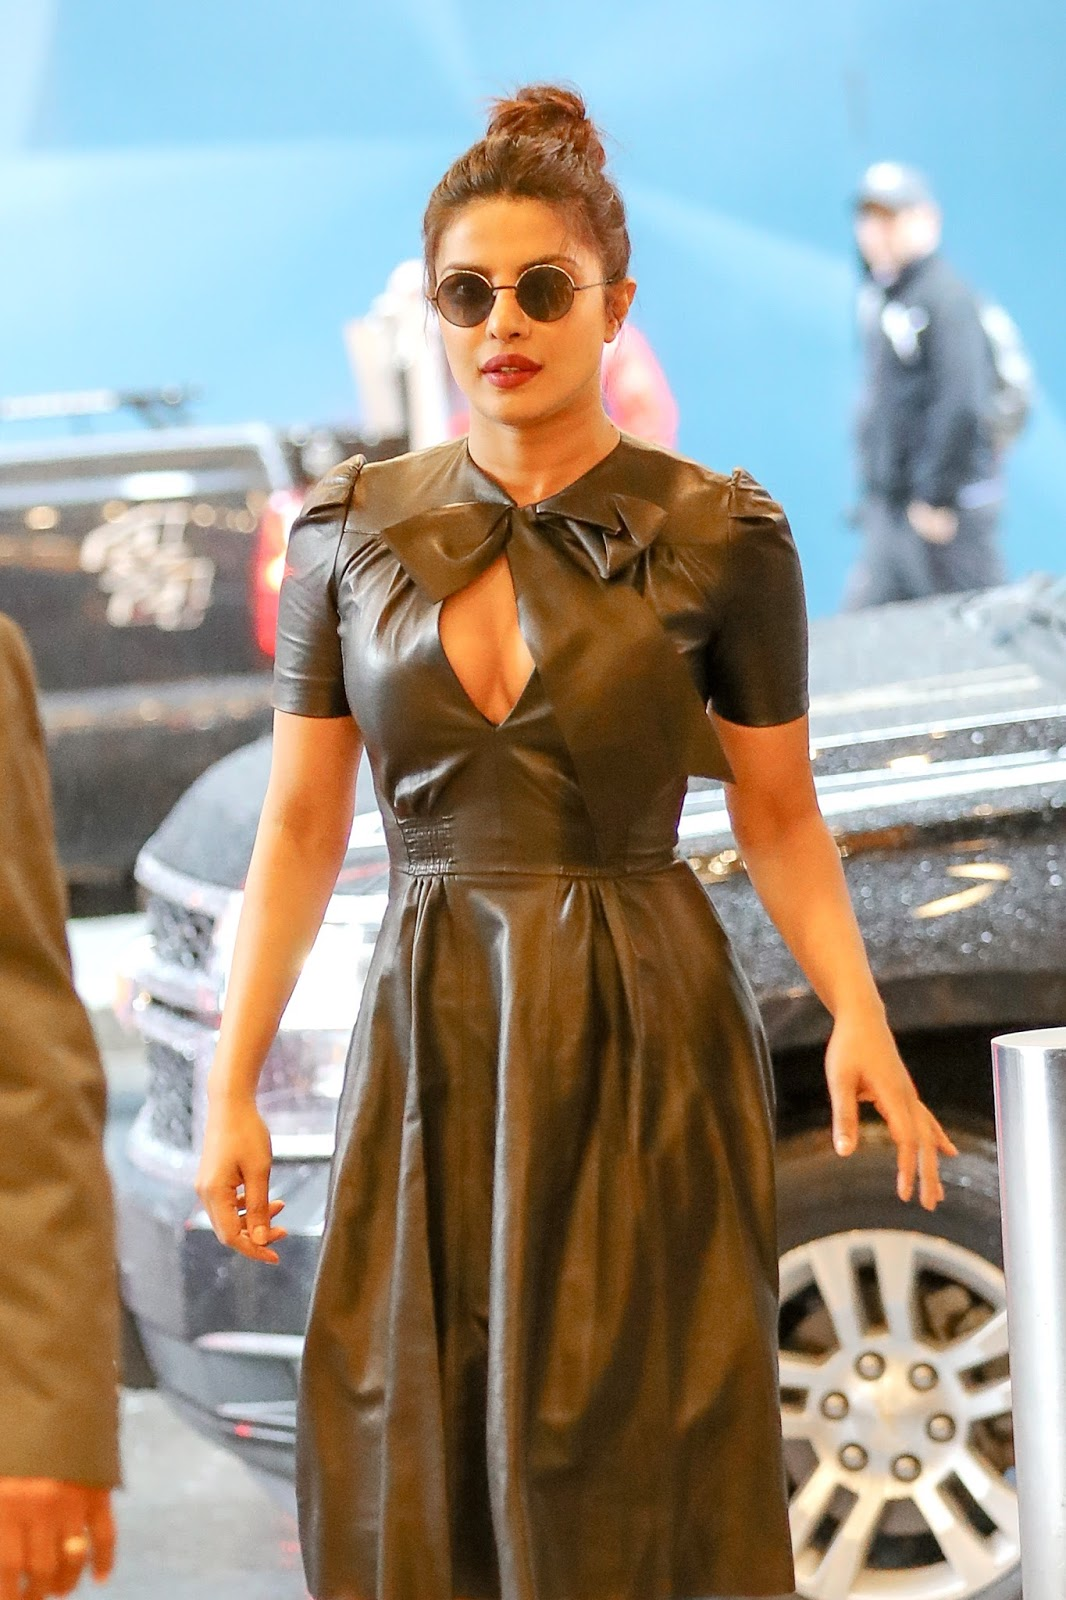 Priyanak Chopra in Stunning Black Goggles Leather Frock and Boots in a Rainy Day New York